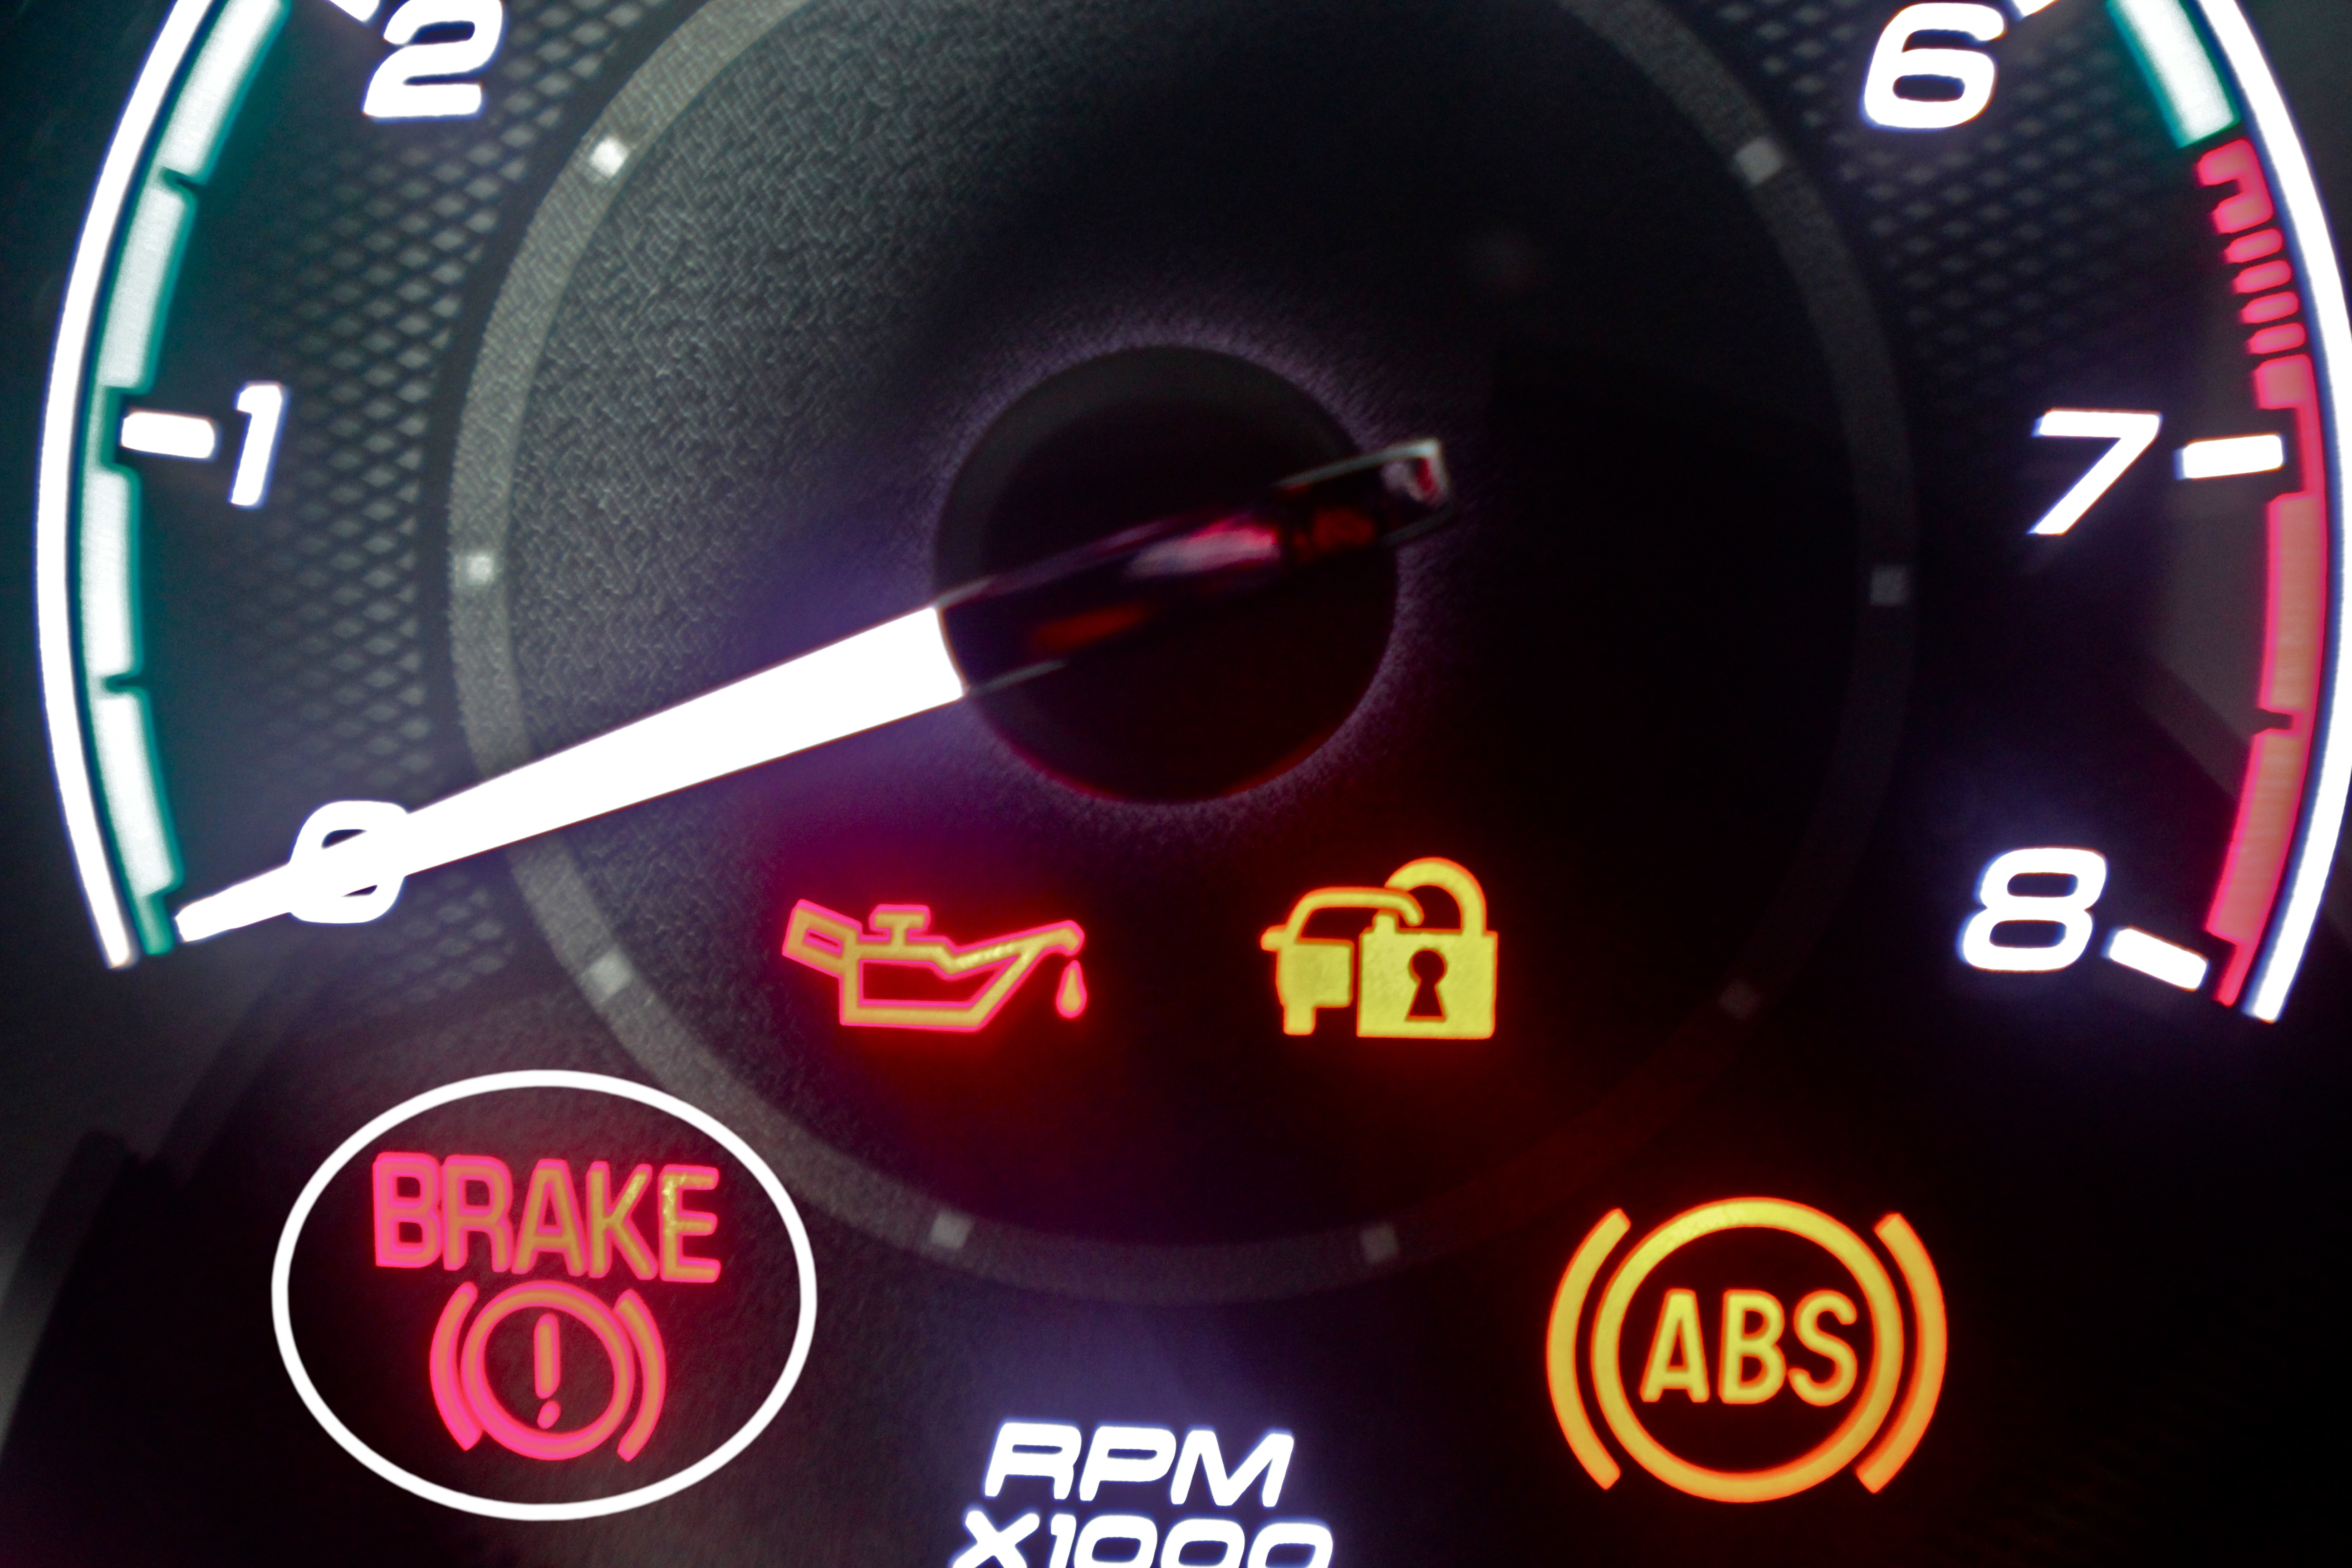 Usually if the brake light comes on this does not indicate a problem with the brakes themselves but with the brake fluid levels typically the brakes do